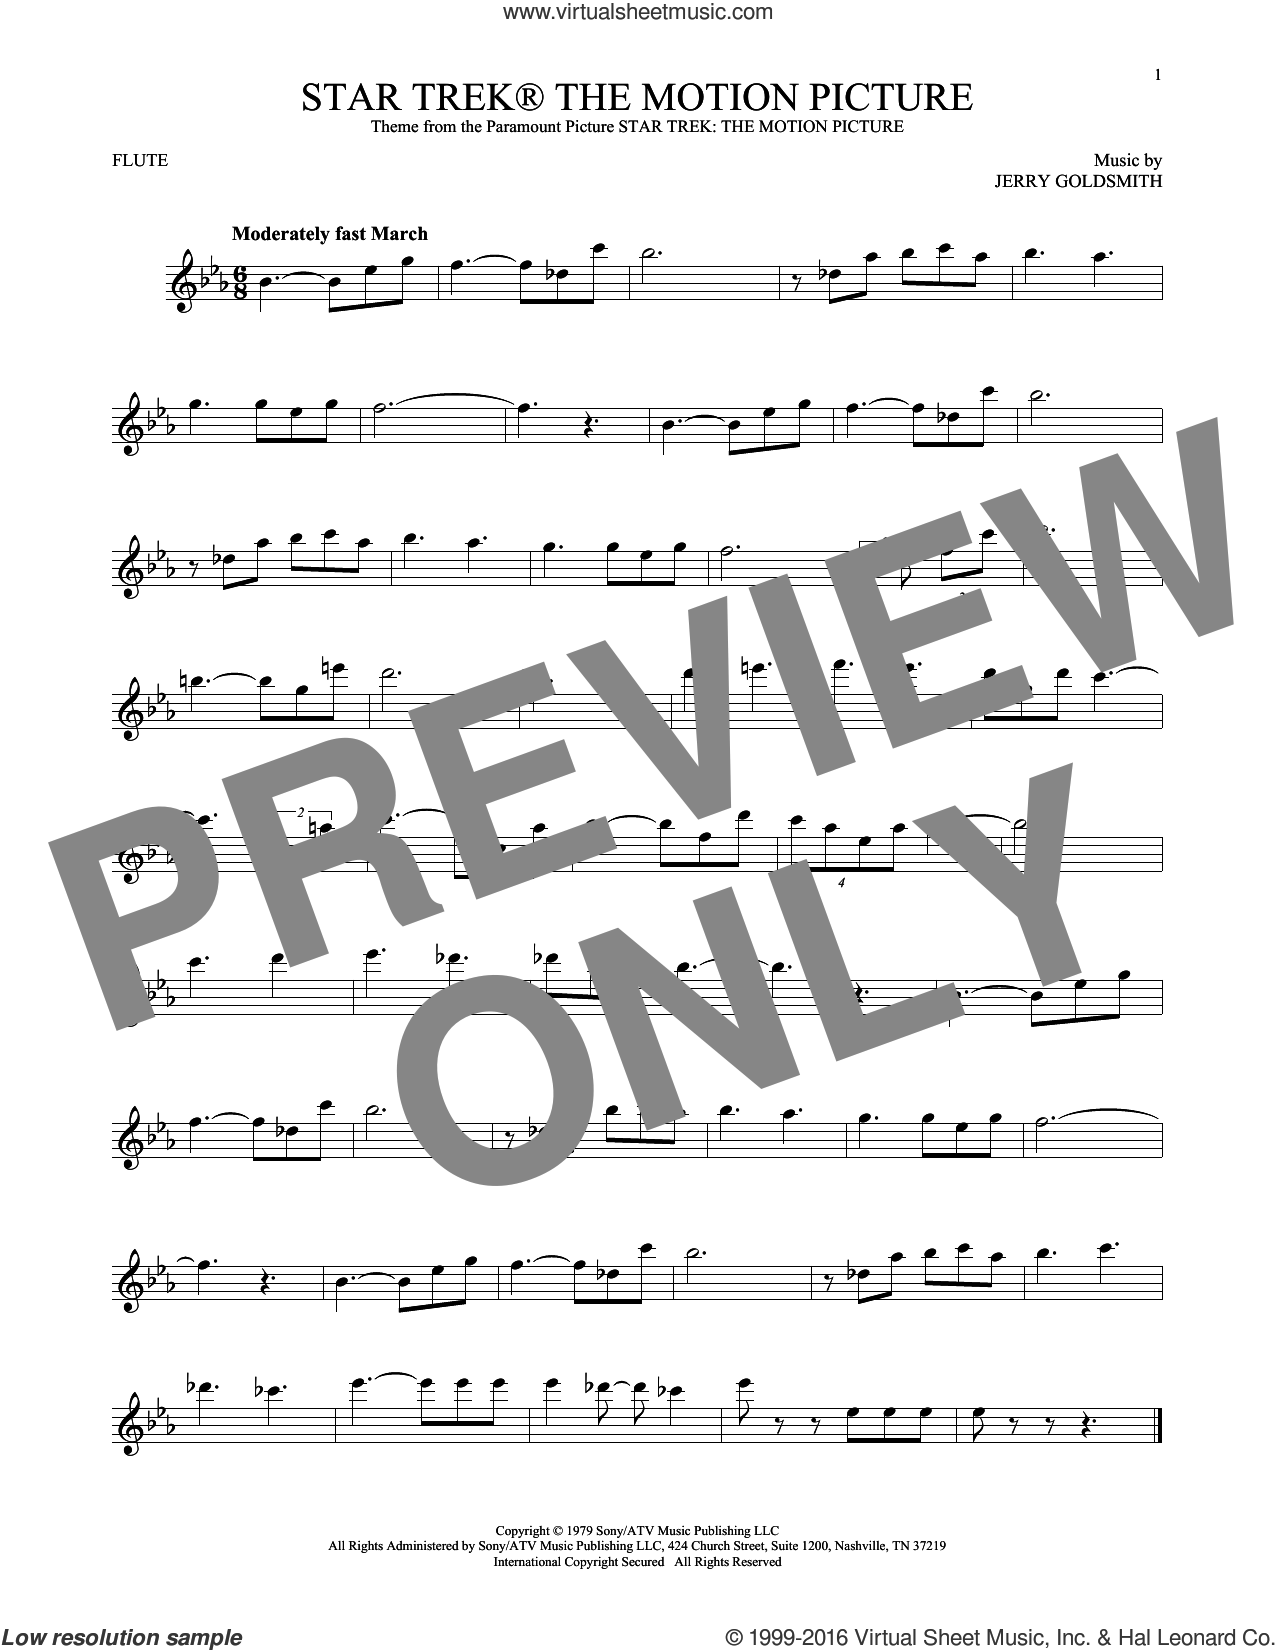 Star Trek The Motion Picture sheet music for flute solo by Jerry Goldsmith. Score Image Preview.